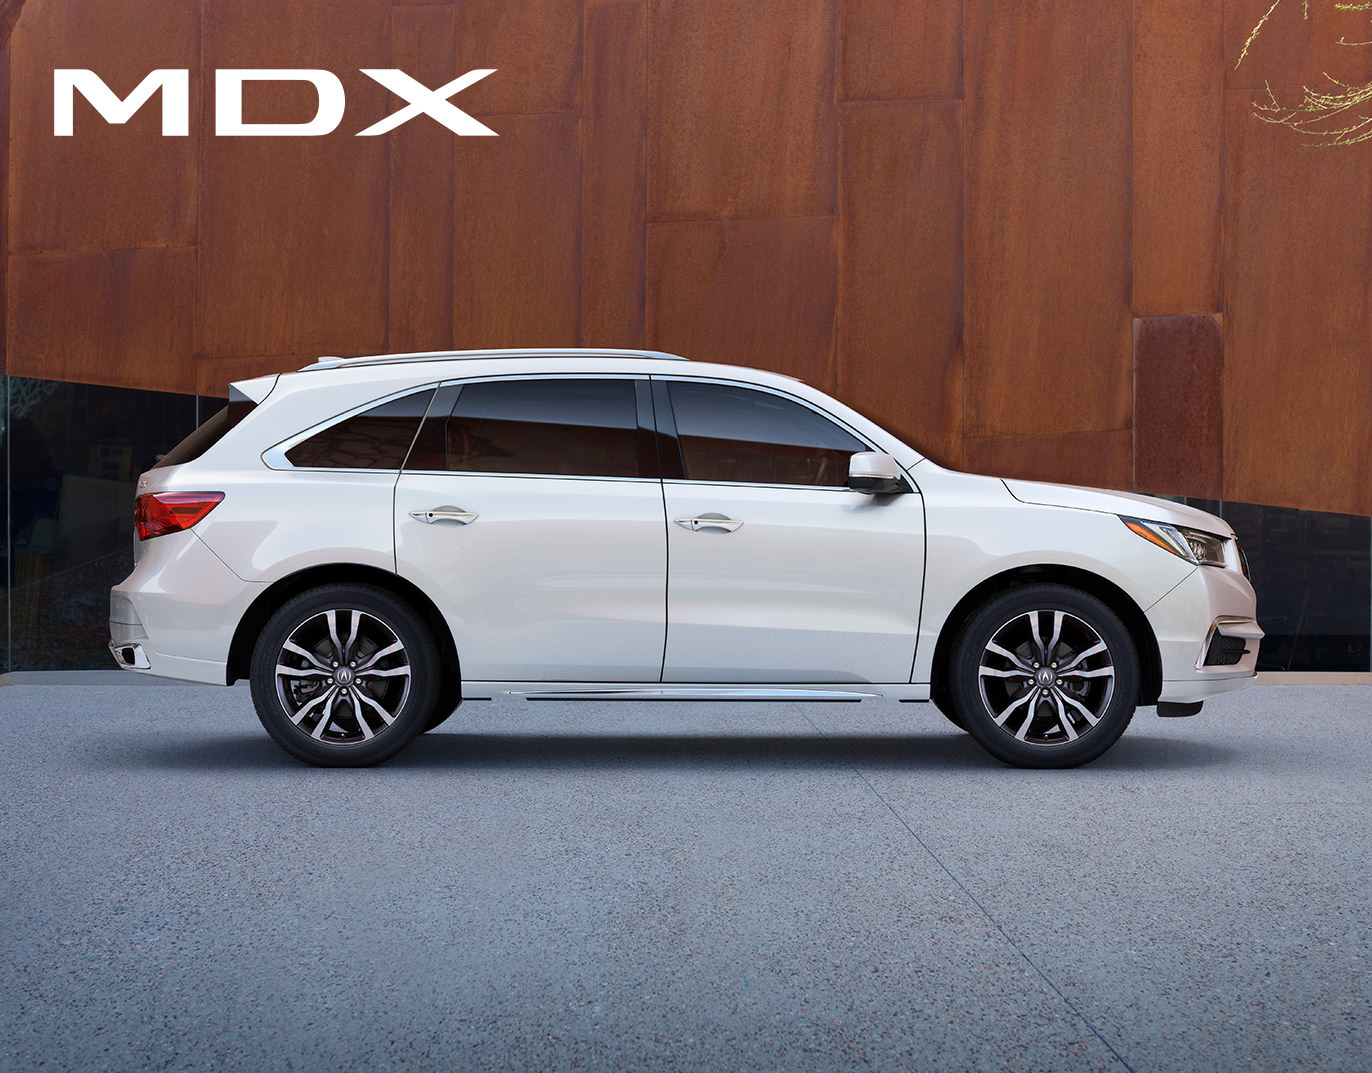 Certified Pre Owned Honda >> 2019 Acura MDX | Luxury Third Row SUV | Acura.com